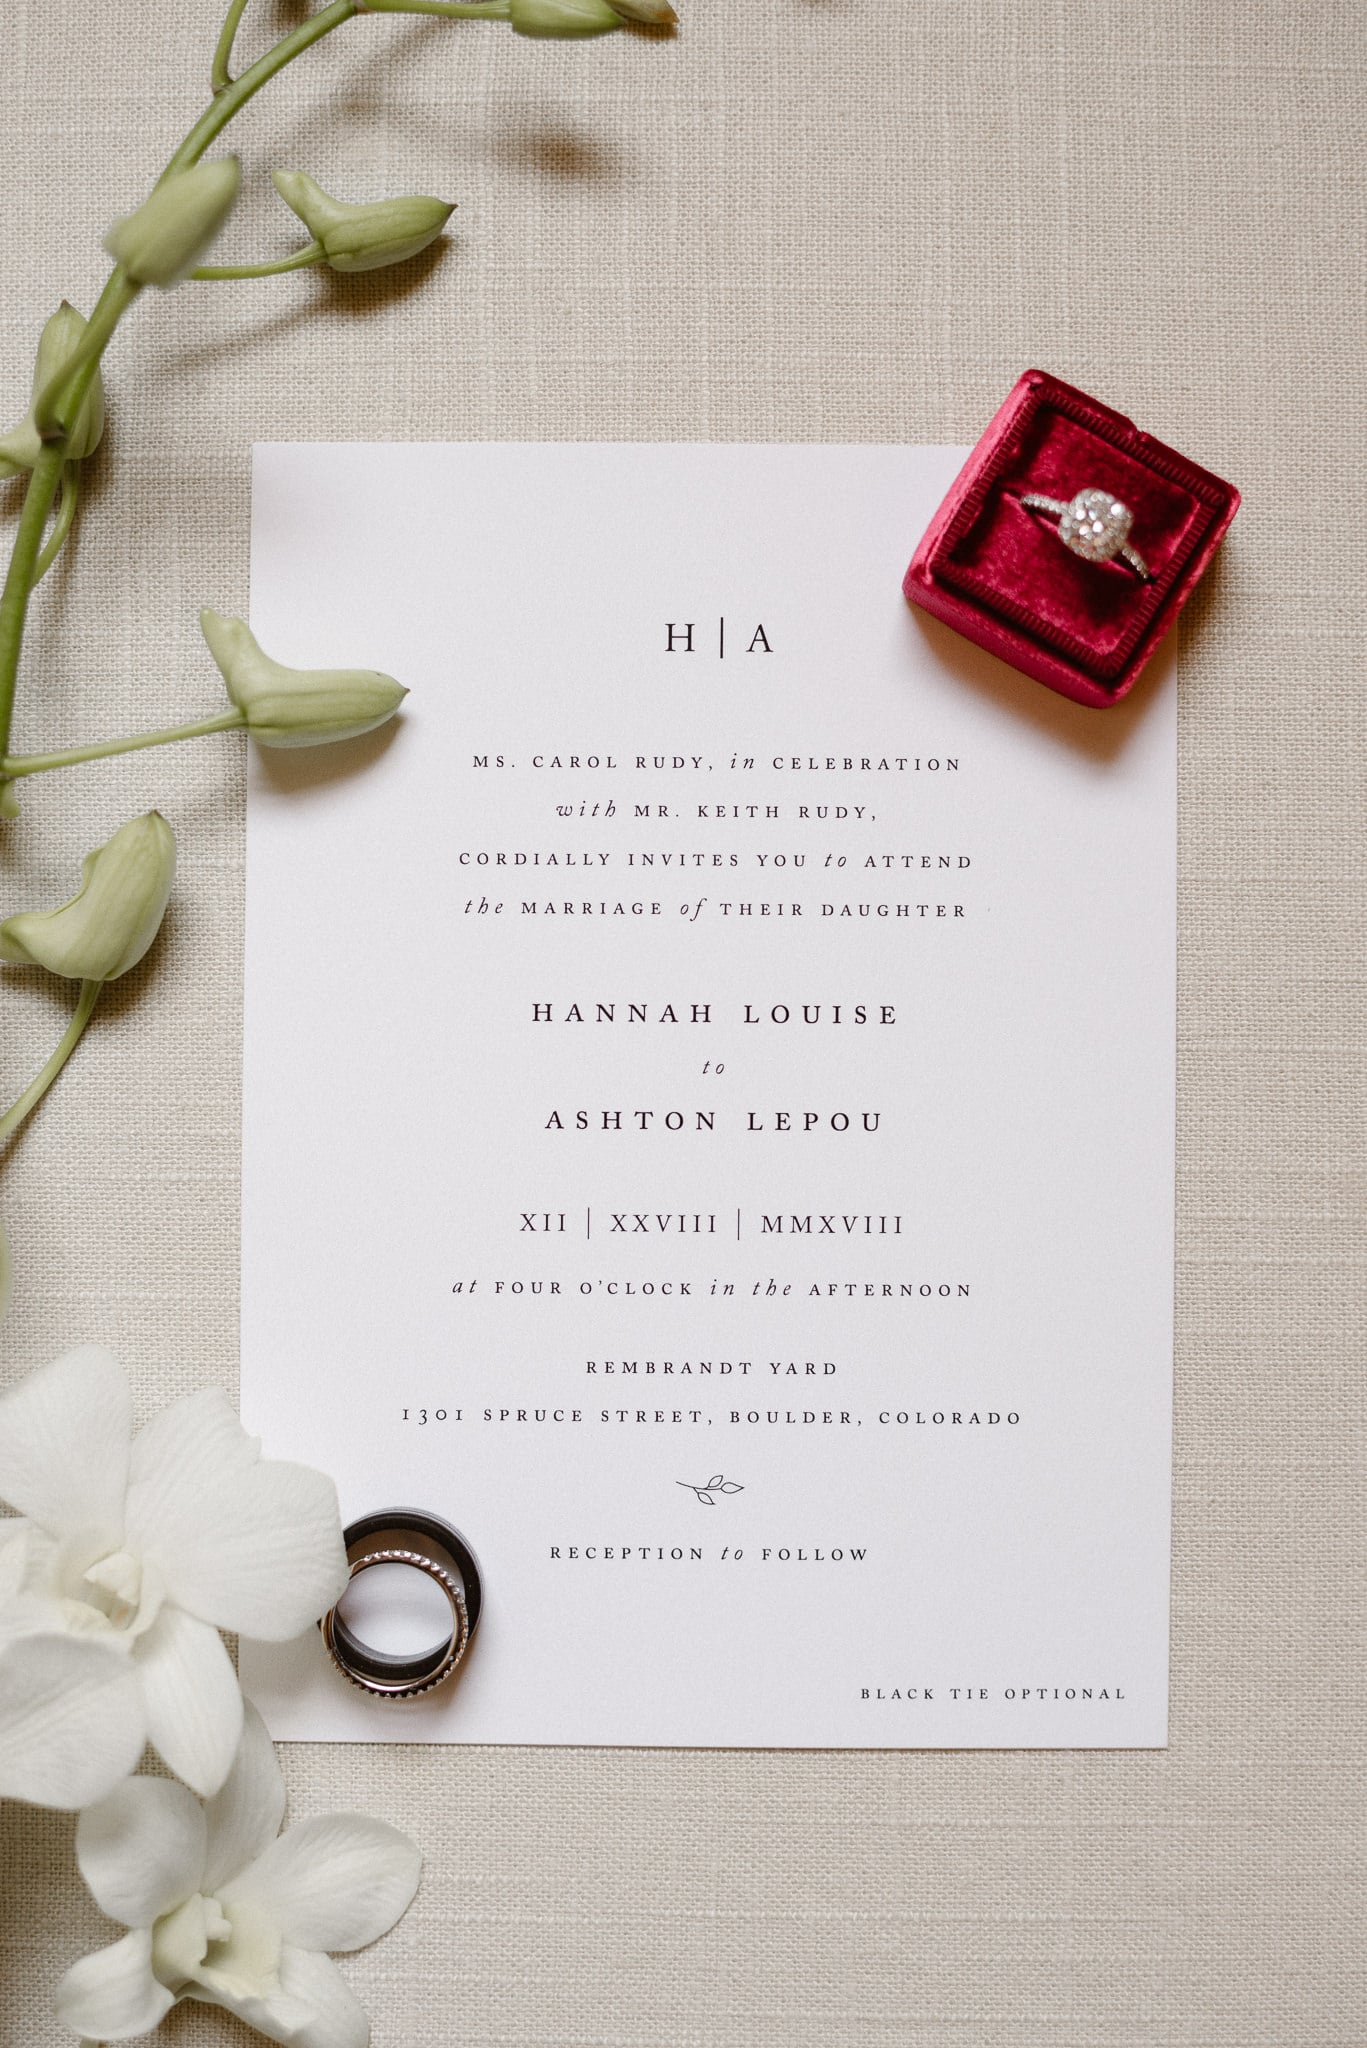 Rembrandt Yard wedding photographer, Boulder wedding photographer, Colorado Jewish wedding, classic wedding invitations with rings and flowers